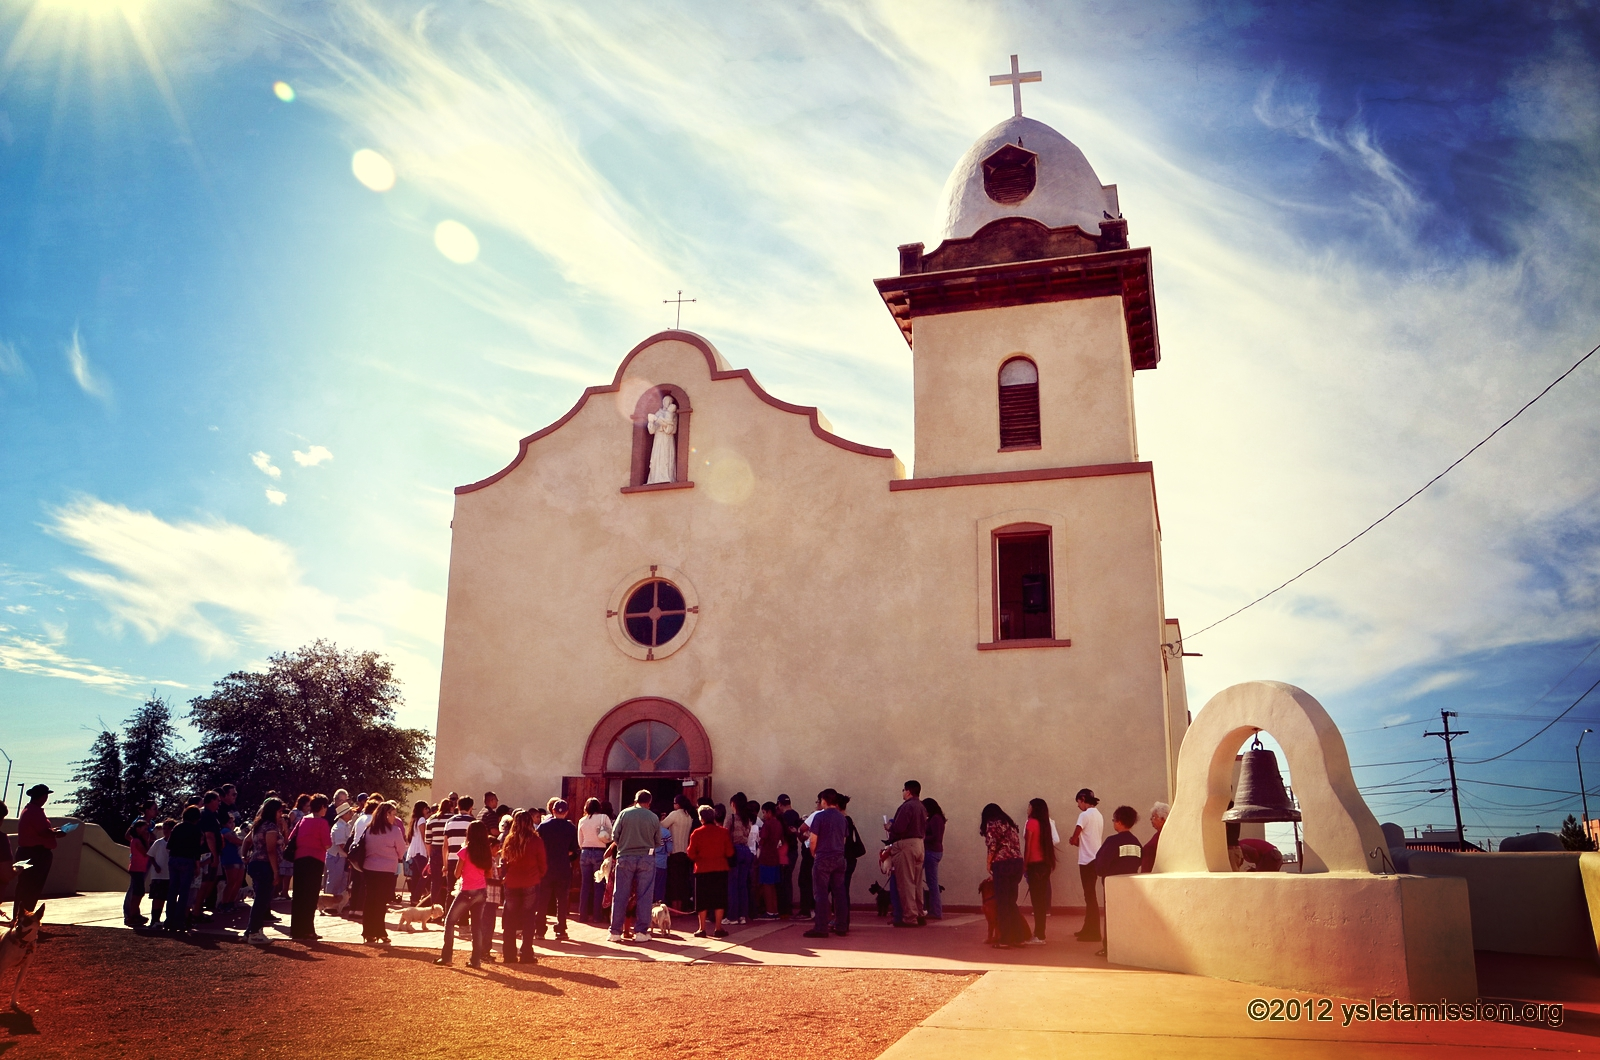 About – Ysleta Mission